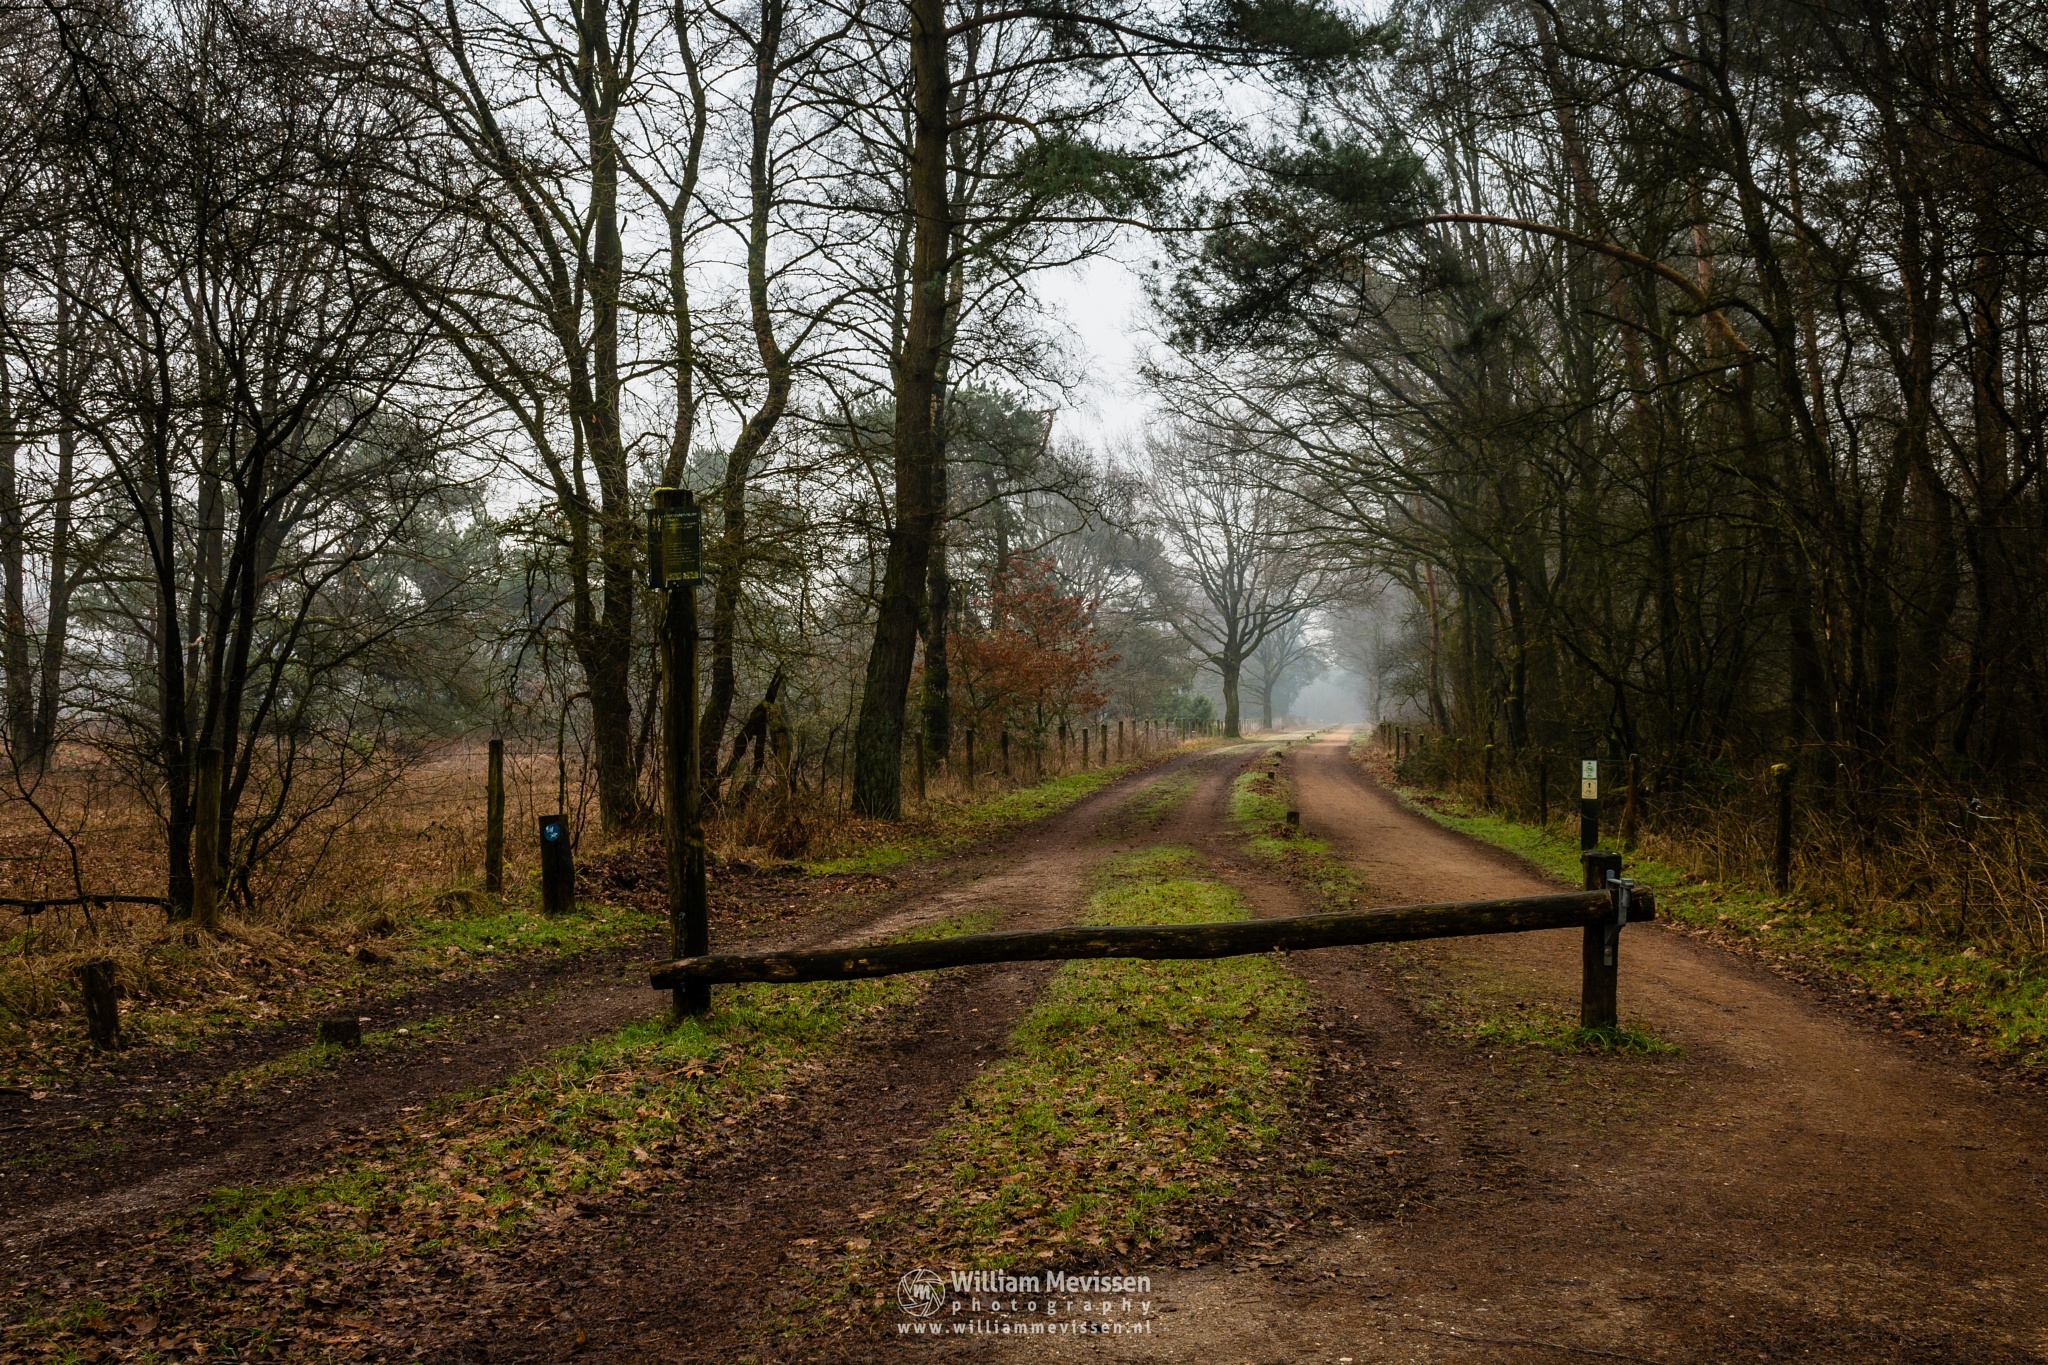 Foggy Dirt Road by William Mevissen